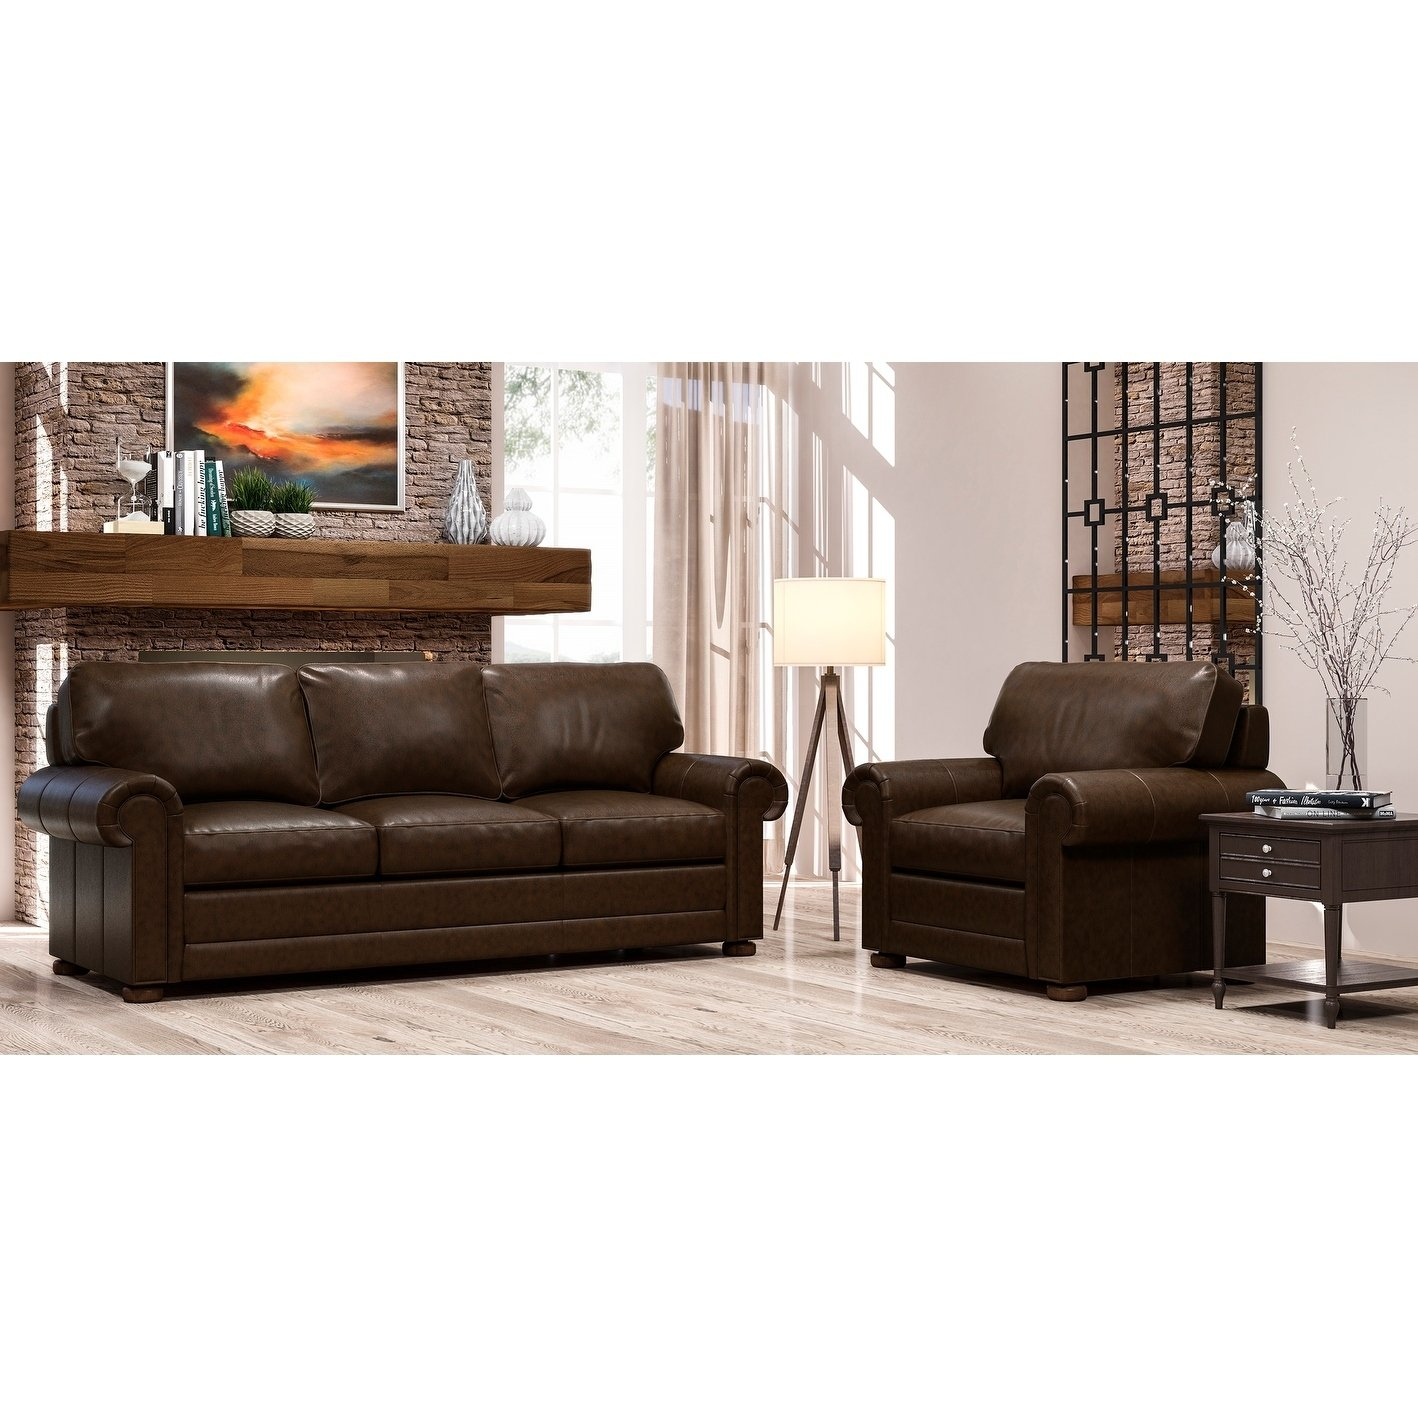 Top Grain Leather Sofa And Chair Set